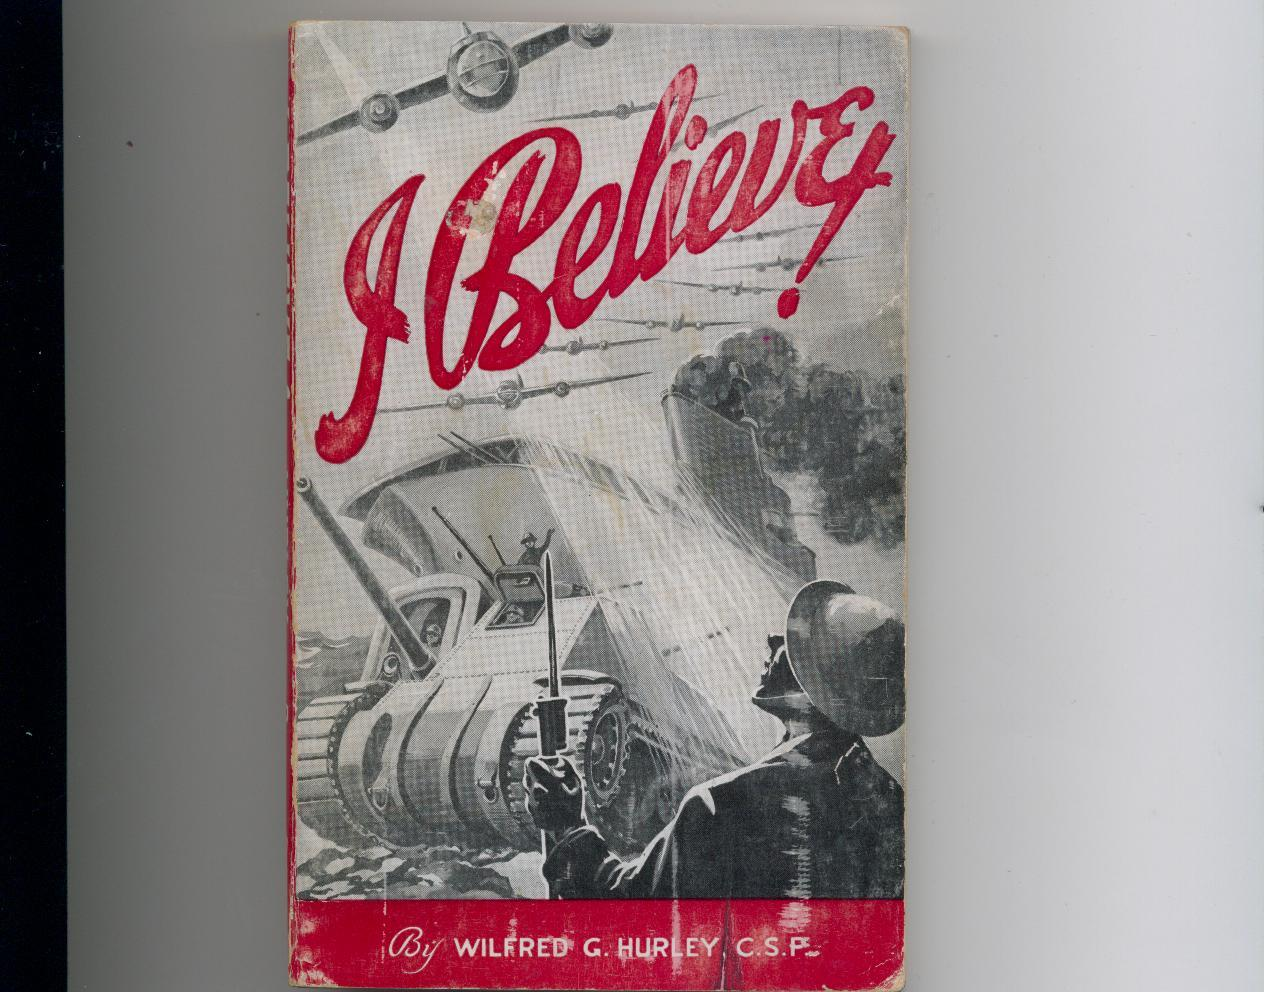 Wilfred Hurley--I BELIEVE!--1942--1st paperback edition